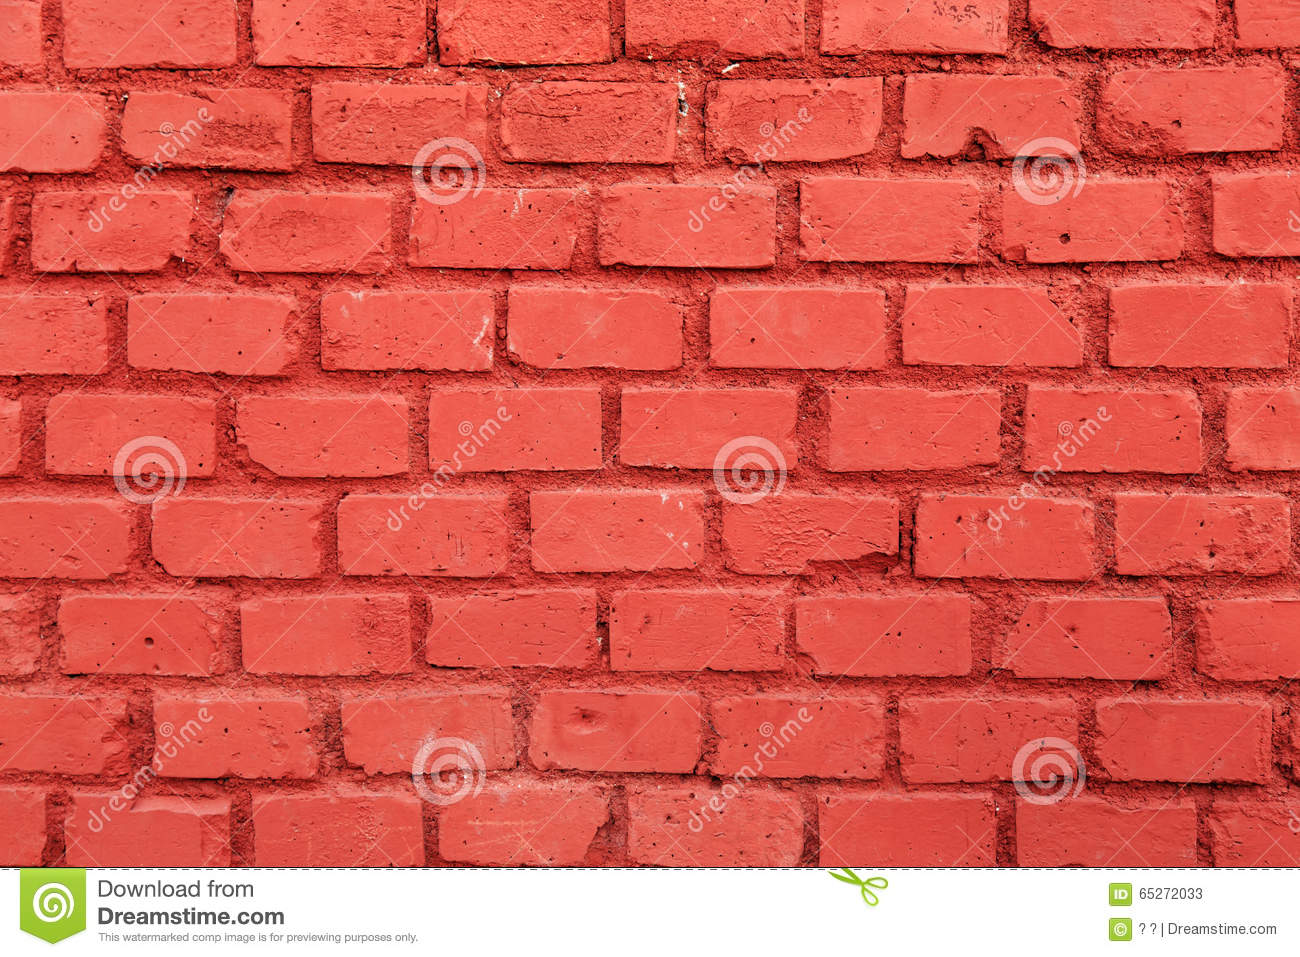 Le mur de briques rouge photo stock image 65272033 Mur en brique rouge